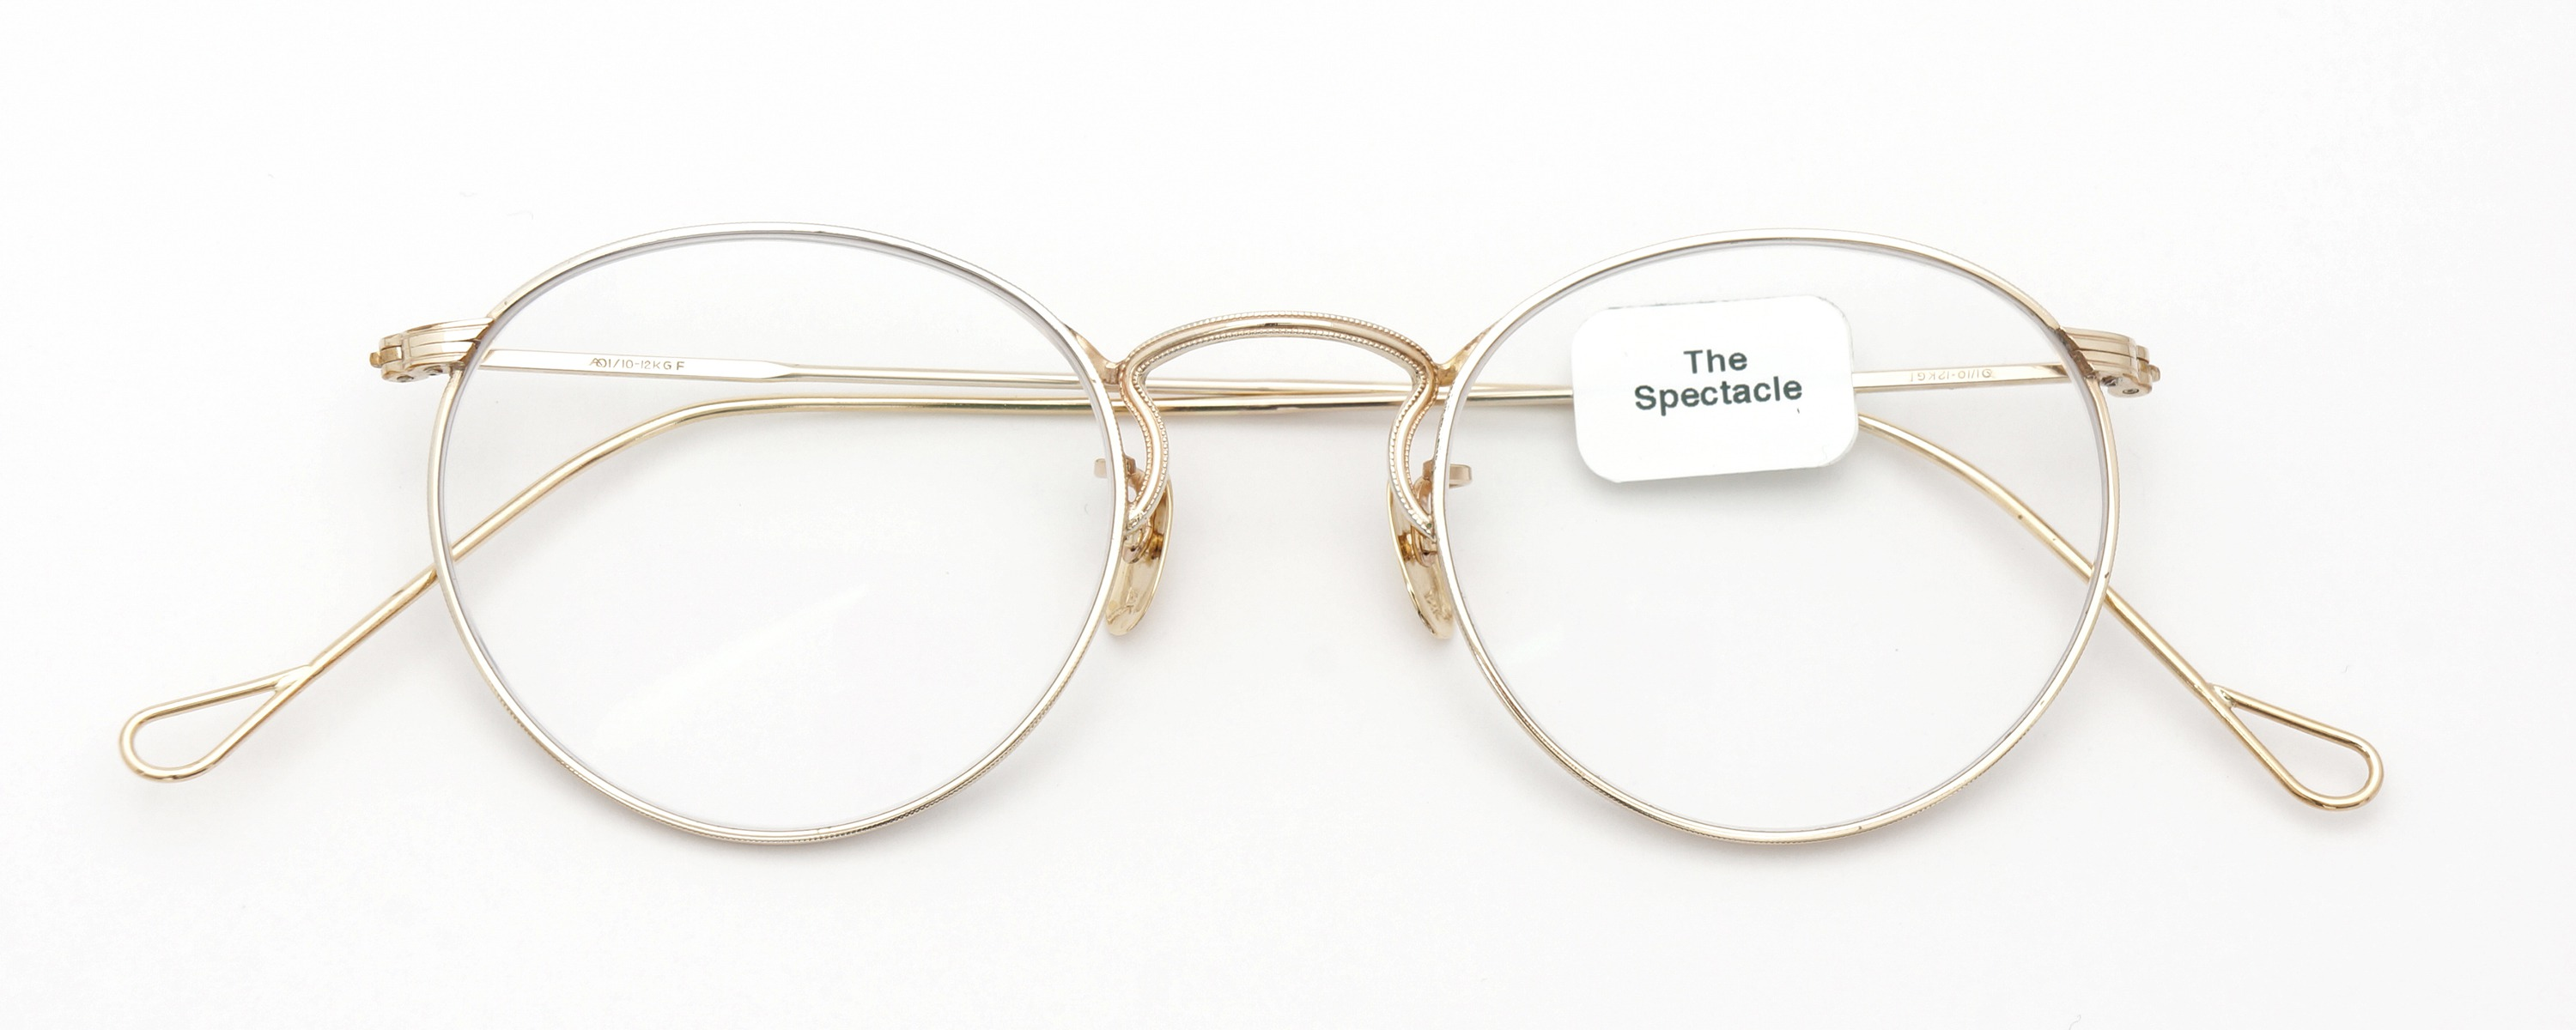 The Spectacle メガネ 1930s-40s  American Optical Full-Frame Ful-Vue P-5 YG 46-22 イメージ2